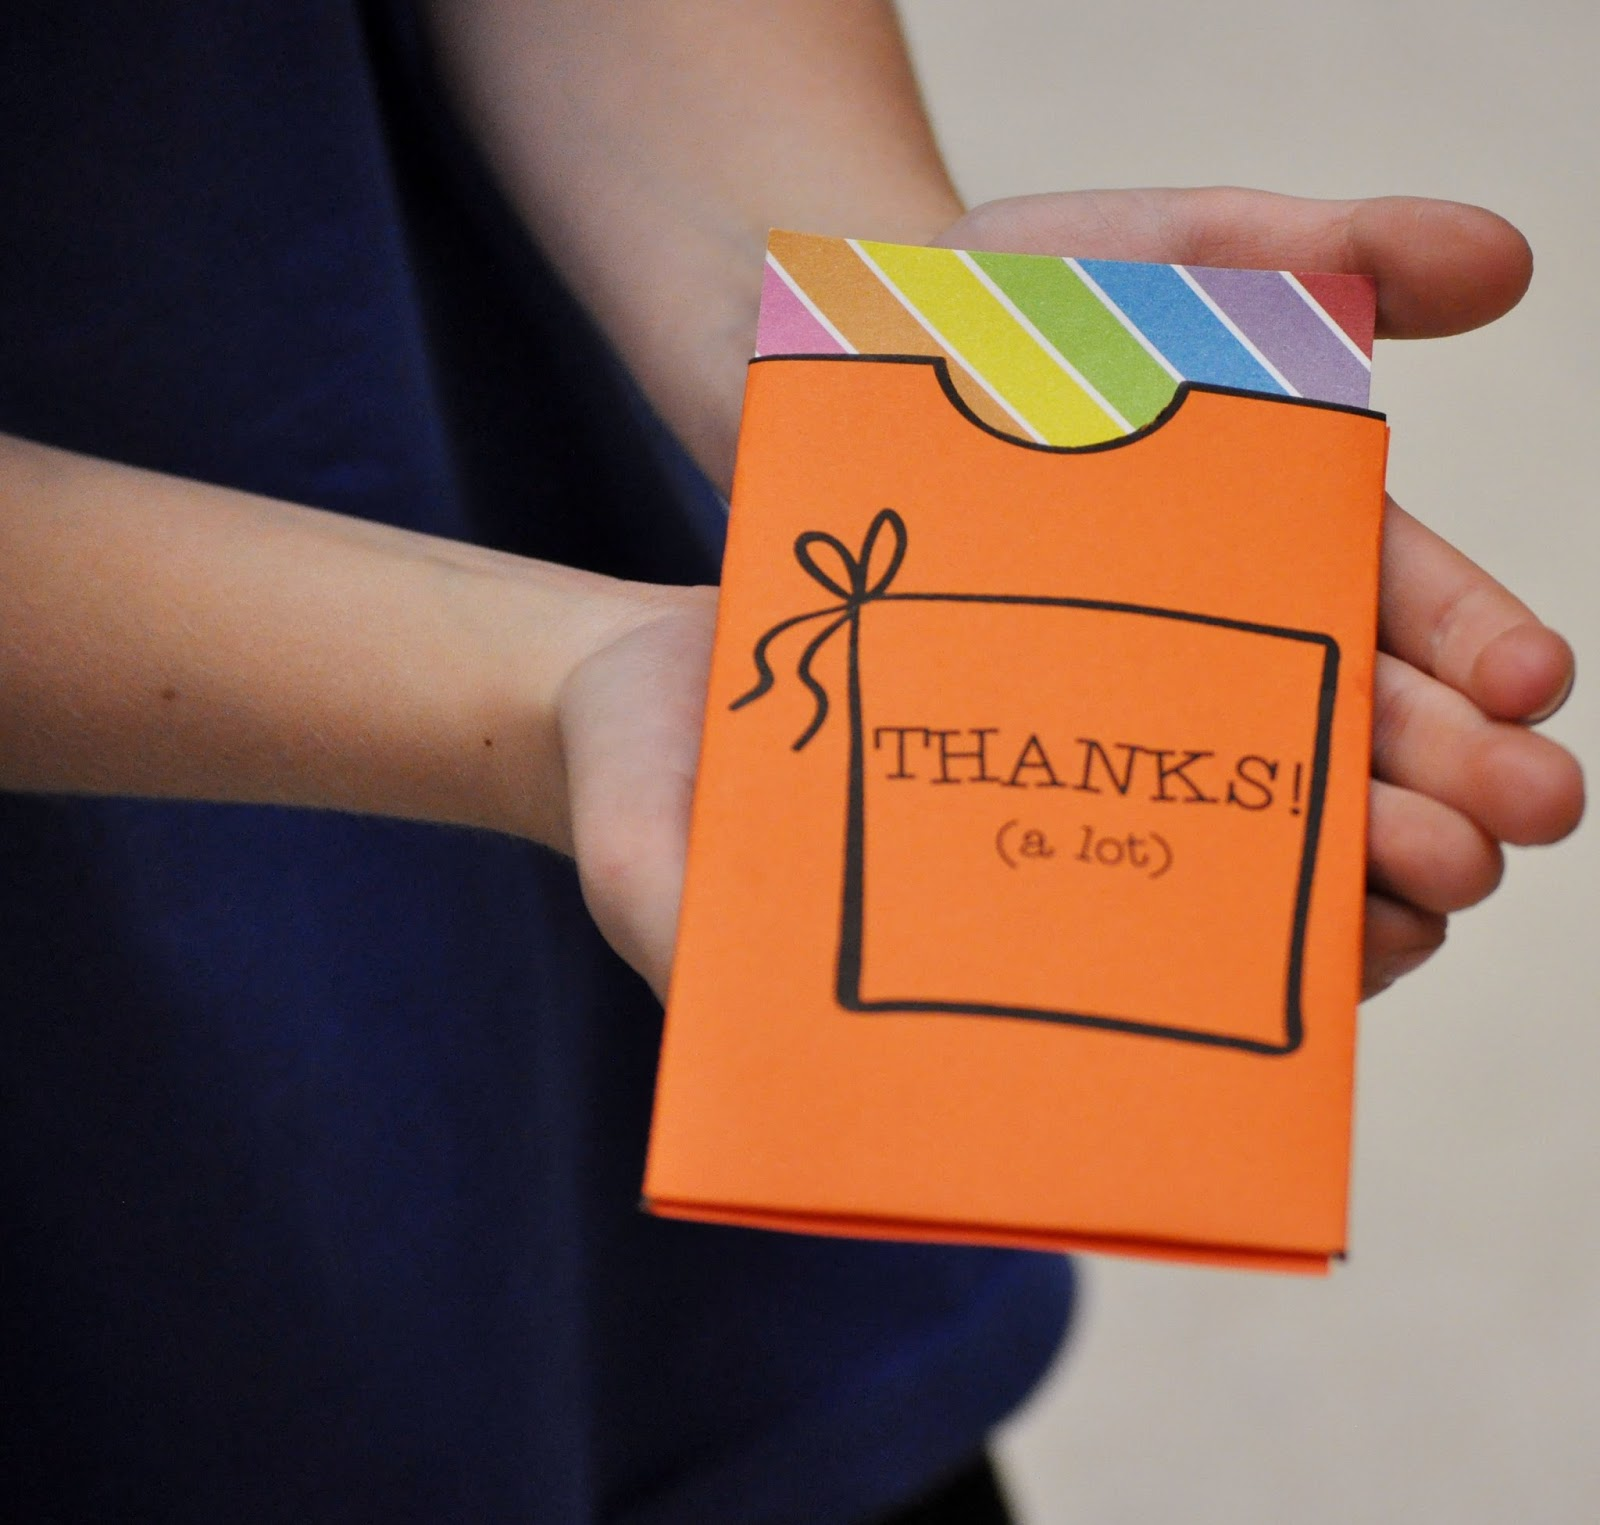 how to say thank you in a cool way